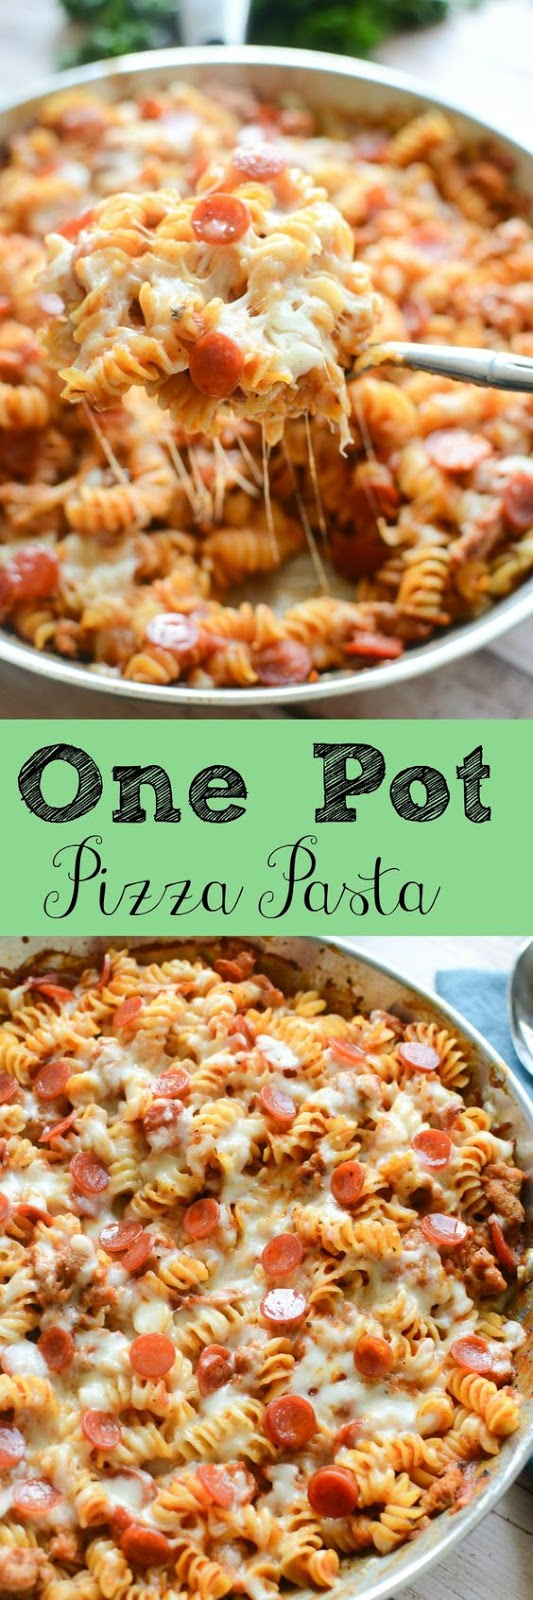 One-Pot Pizza Pasta #onepot #pizza #pasta